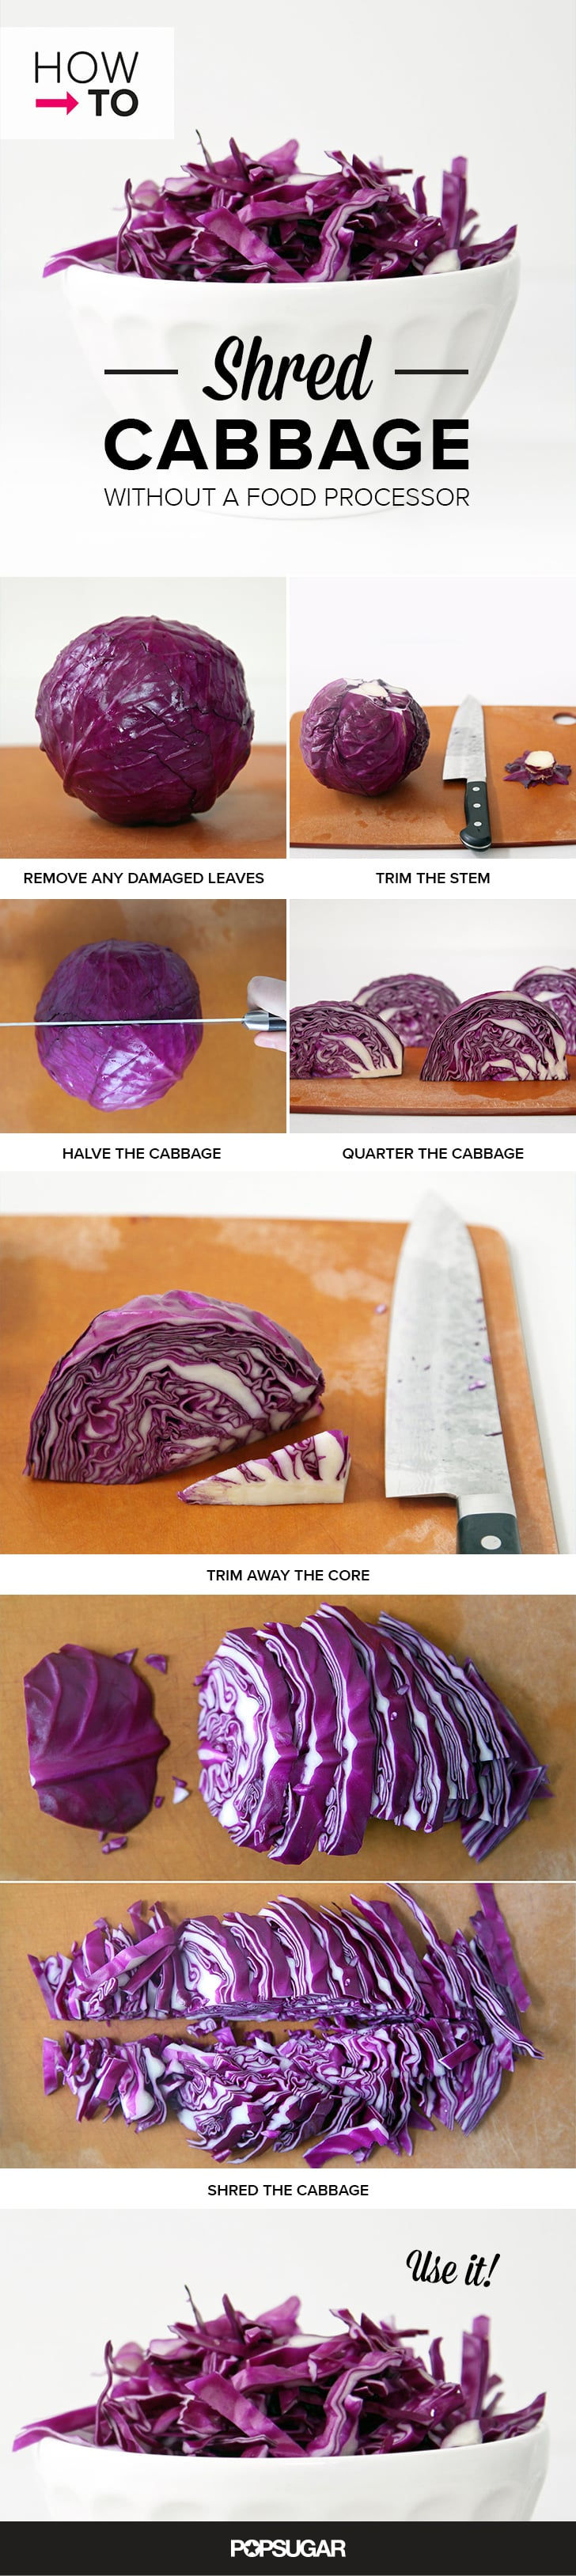 How to Shred Cabbage Without a Food Processor